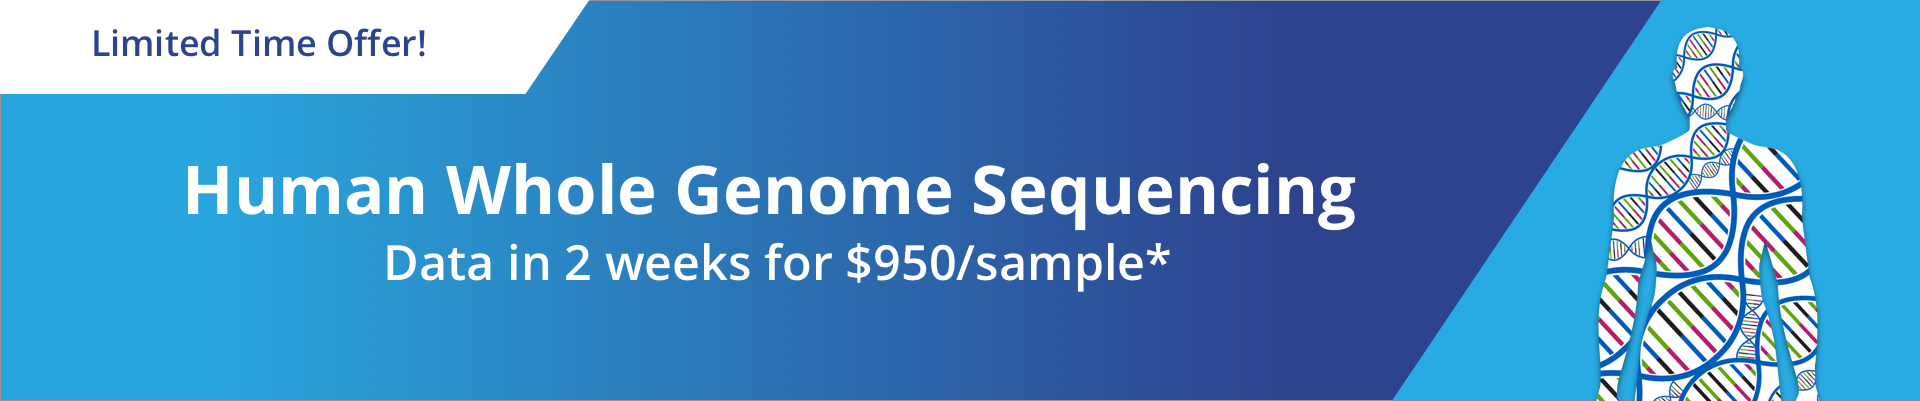 Human_Whole_Genome_Seq_950_sample_LP1